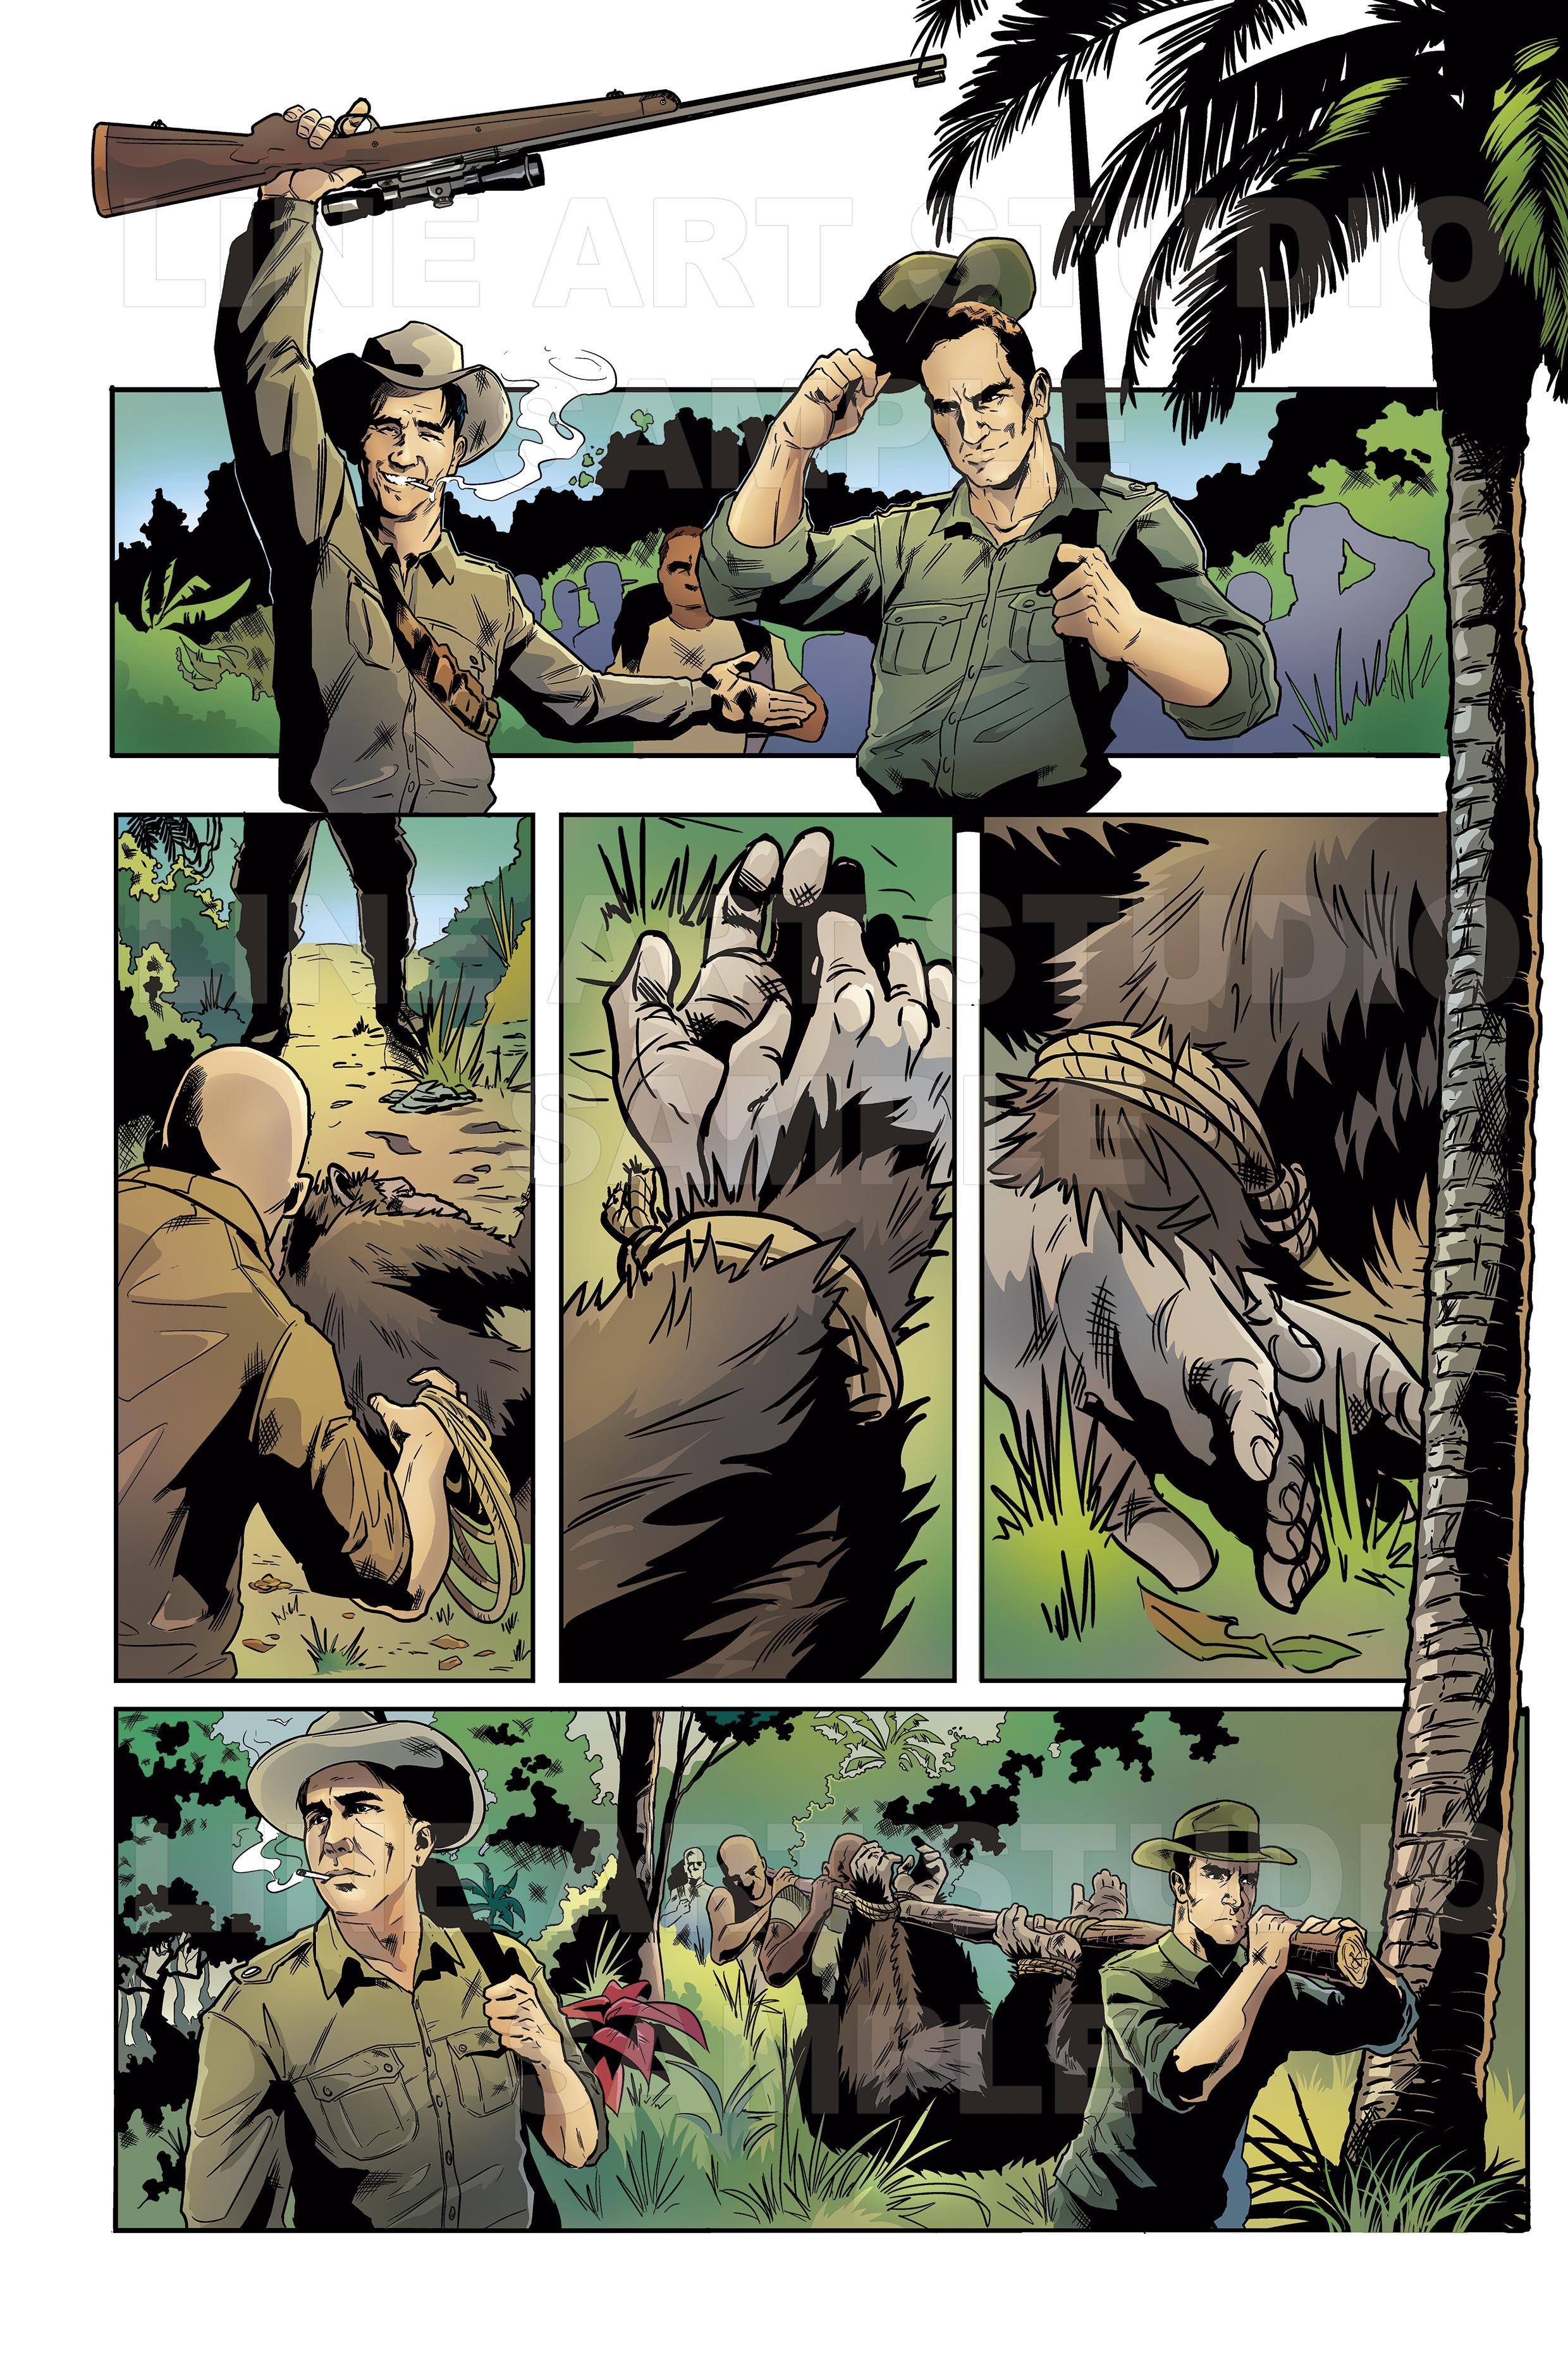 CHIMPIS_CHAMP_02_PAGE_12_COLOR